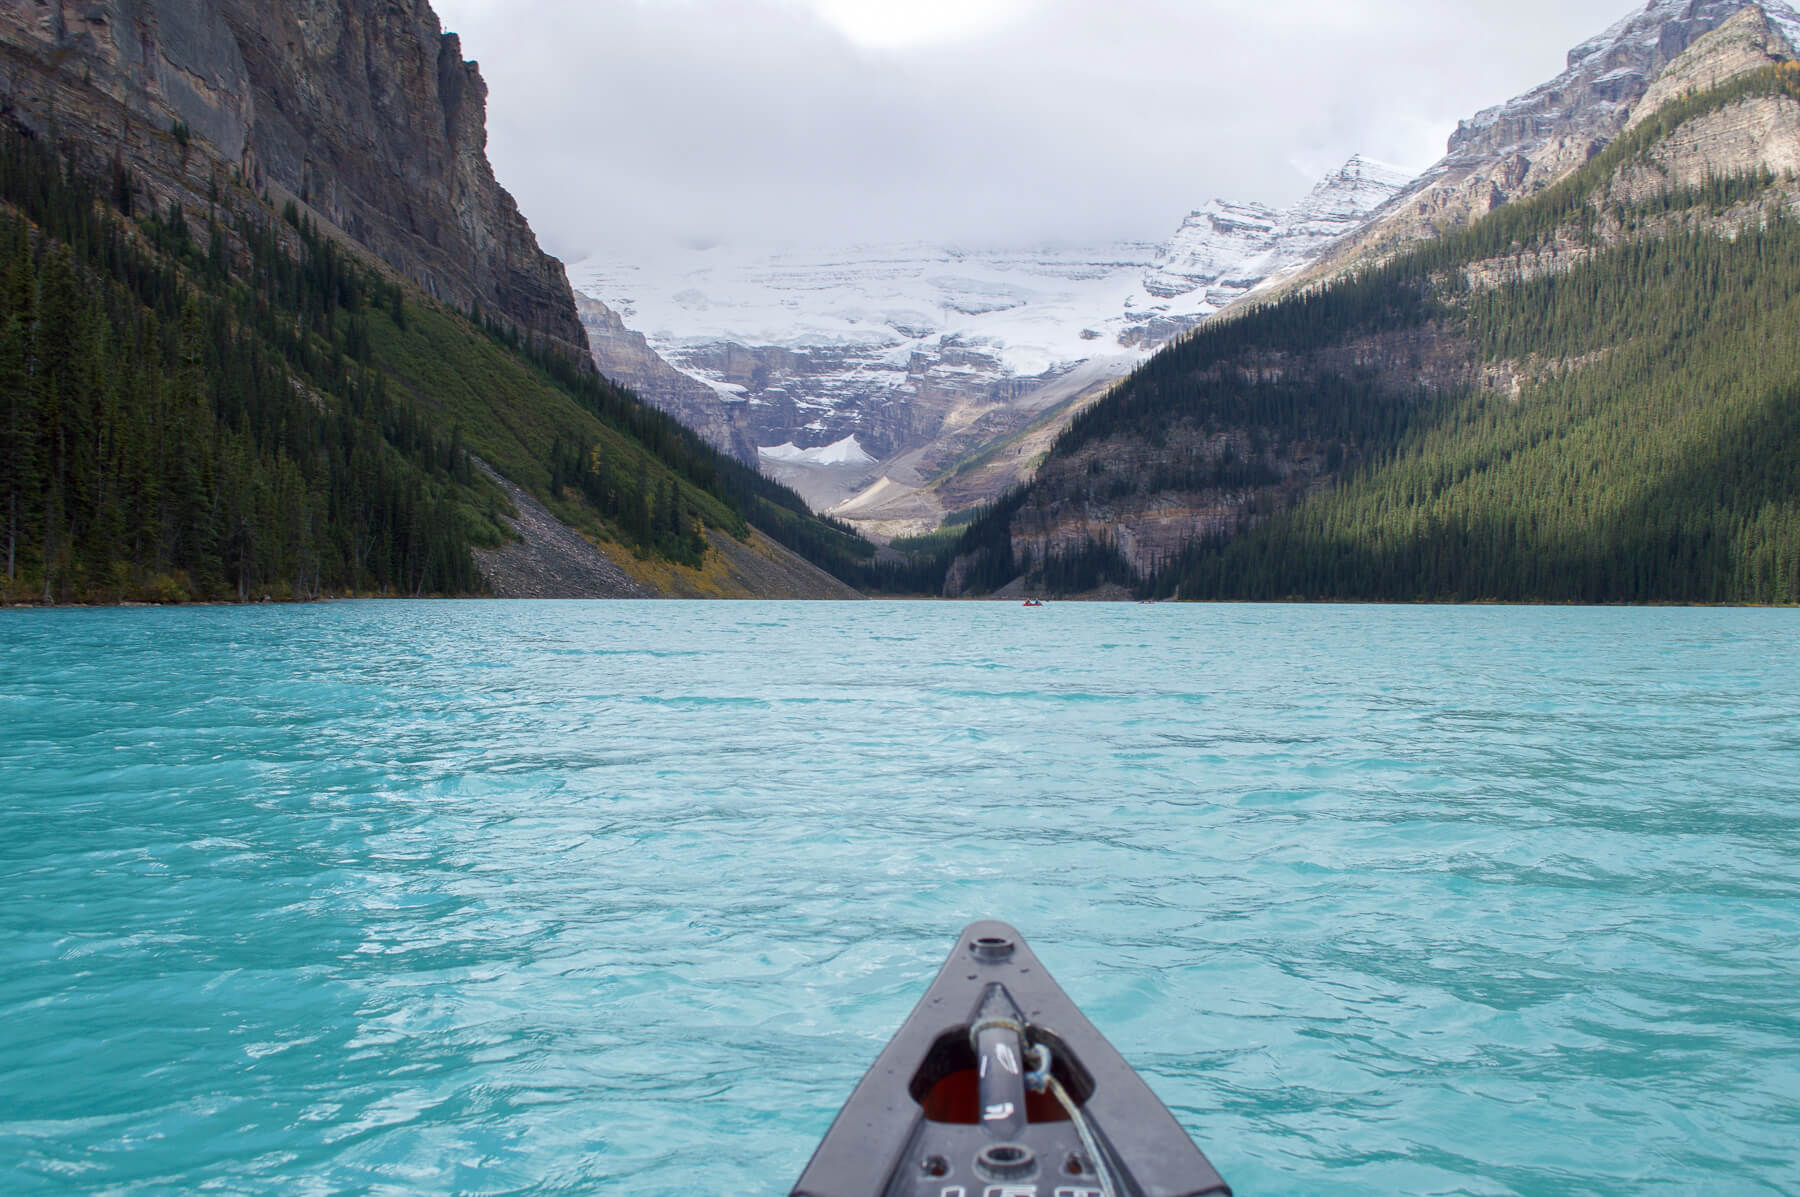 The tip of a canoe on the bright blue water of Lake Louise